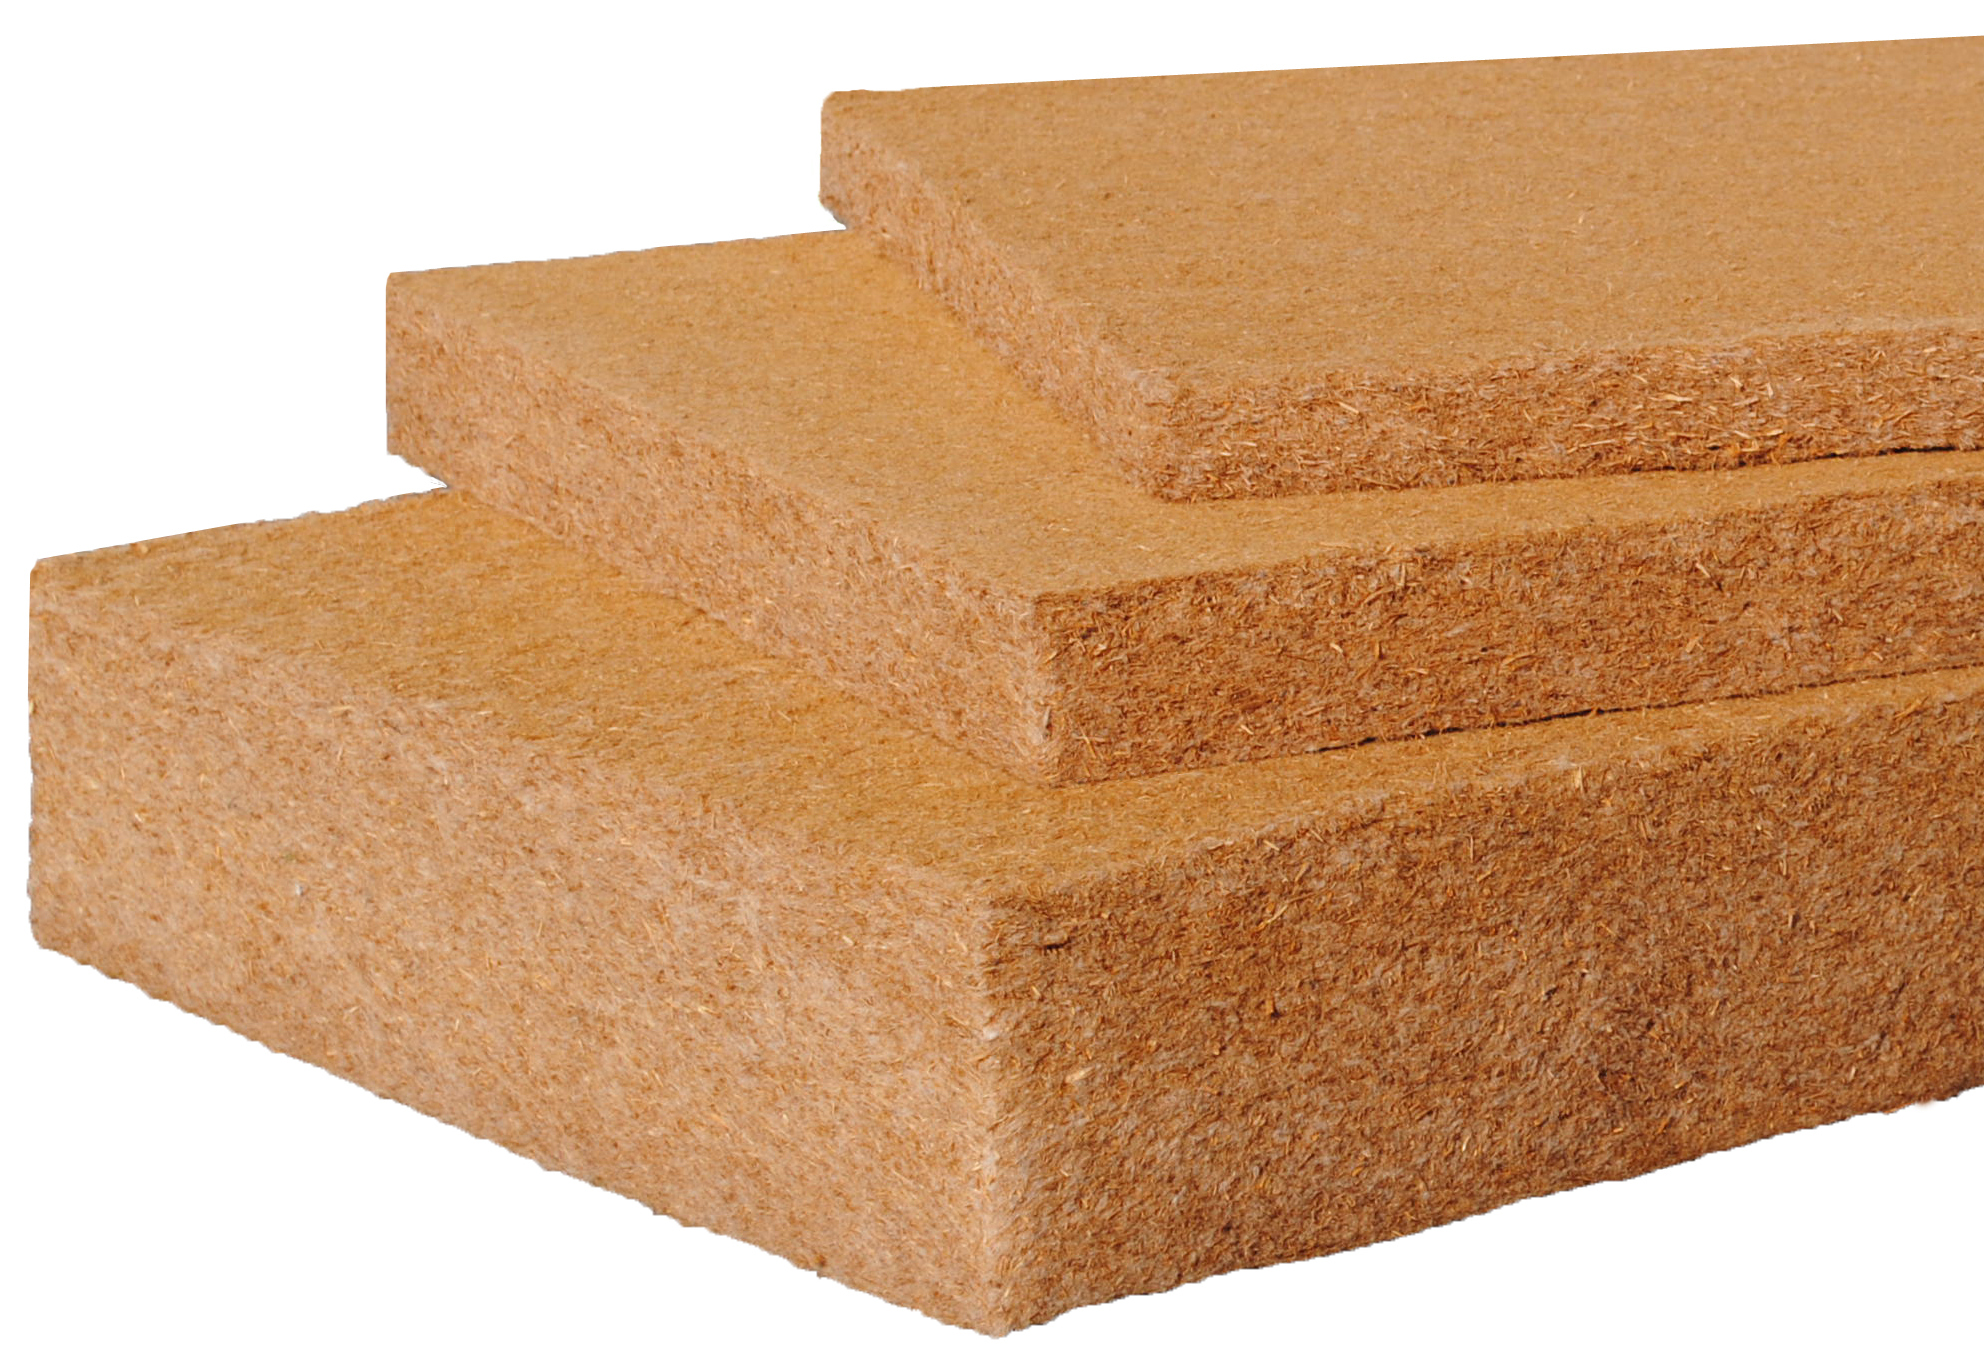 Pavaflex Flexible Wood Fibre Insulation